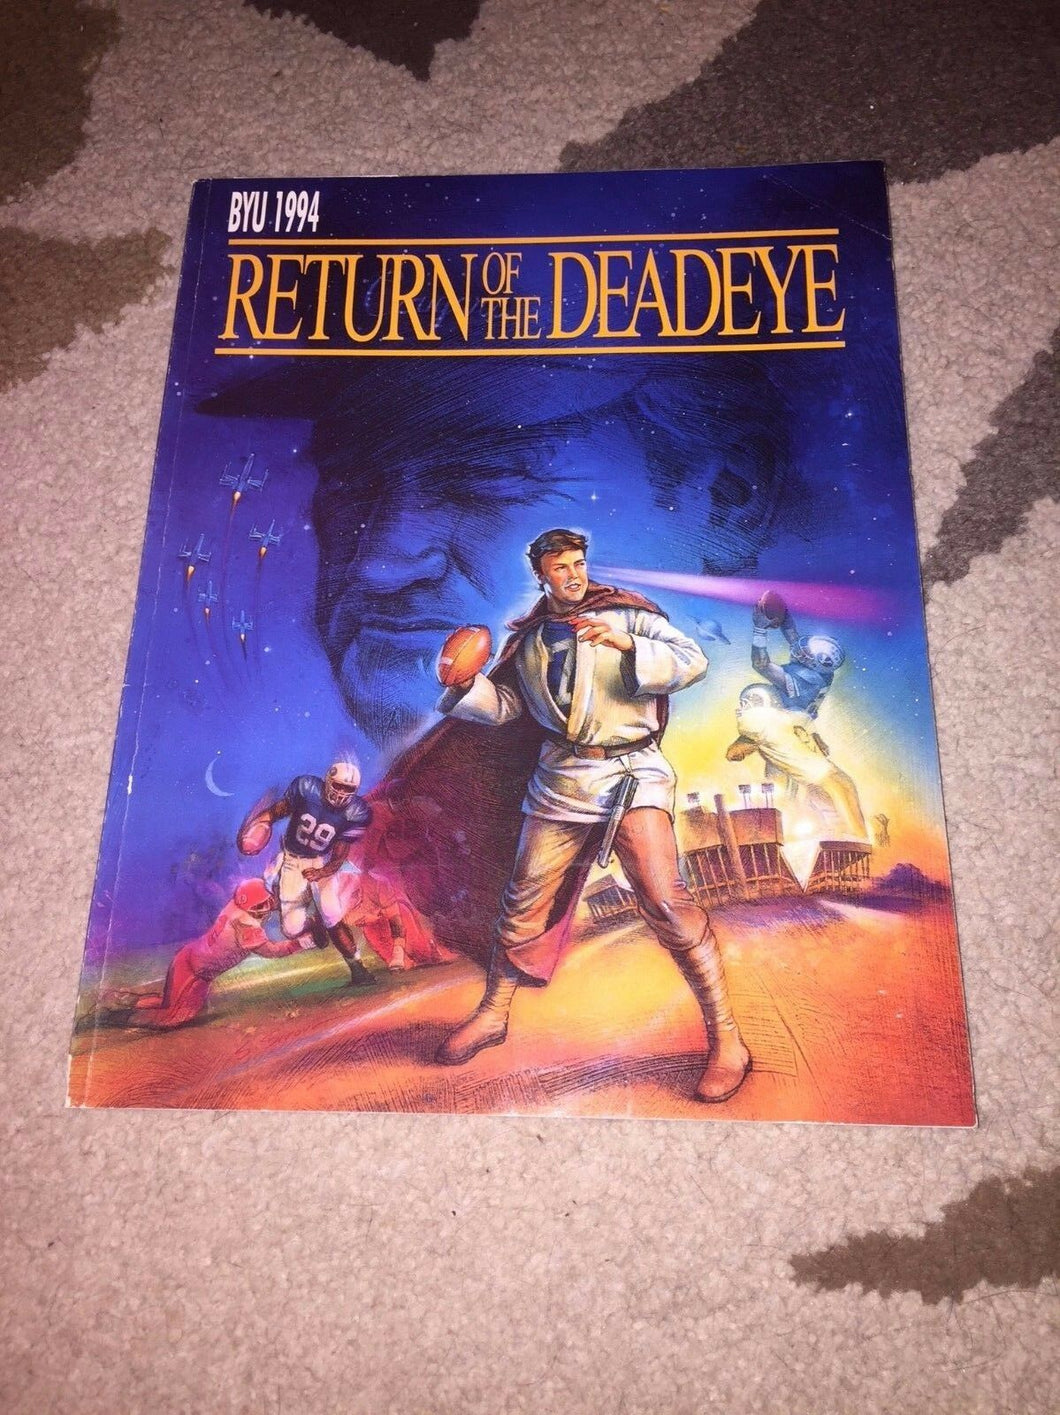 1994 BYU RETURN OF THE DEADEYE BRIGHAM YOUNG COLLEGE FOOTBALL MEDIA GUIDE - BOX5